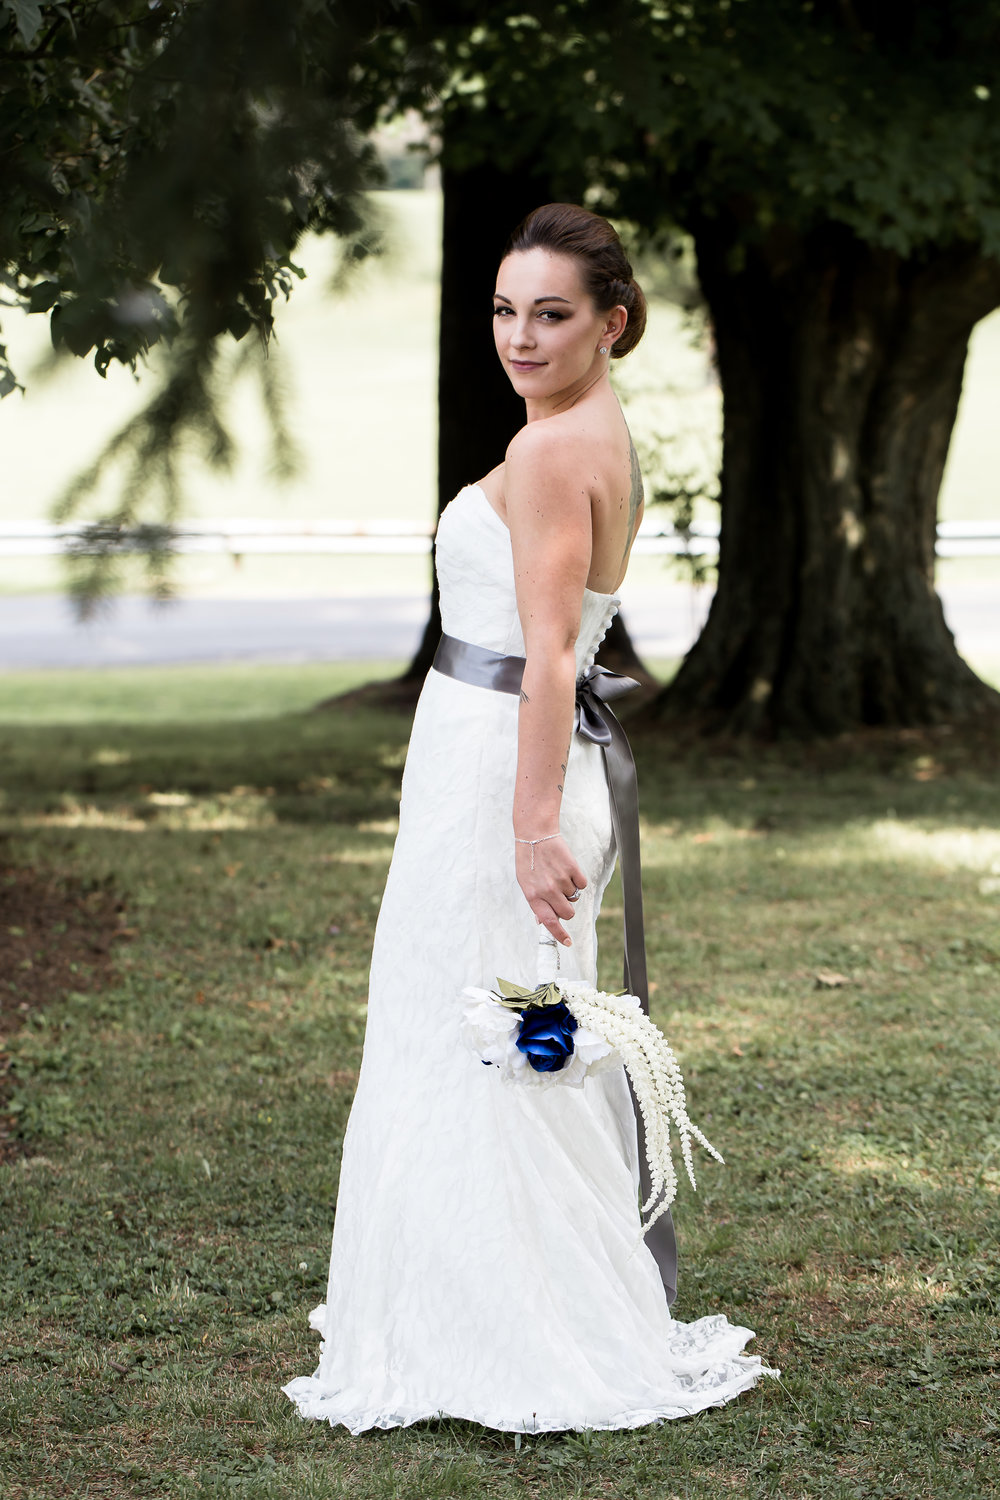 Gandjos_Tinko_BackSeatPhotography_backseatphoto52.JPG